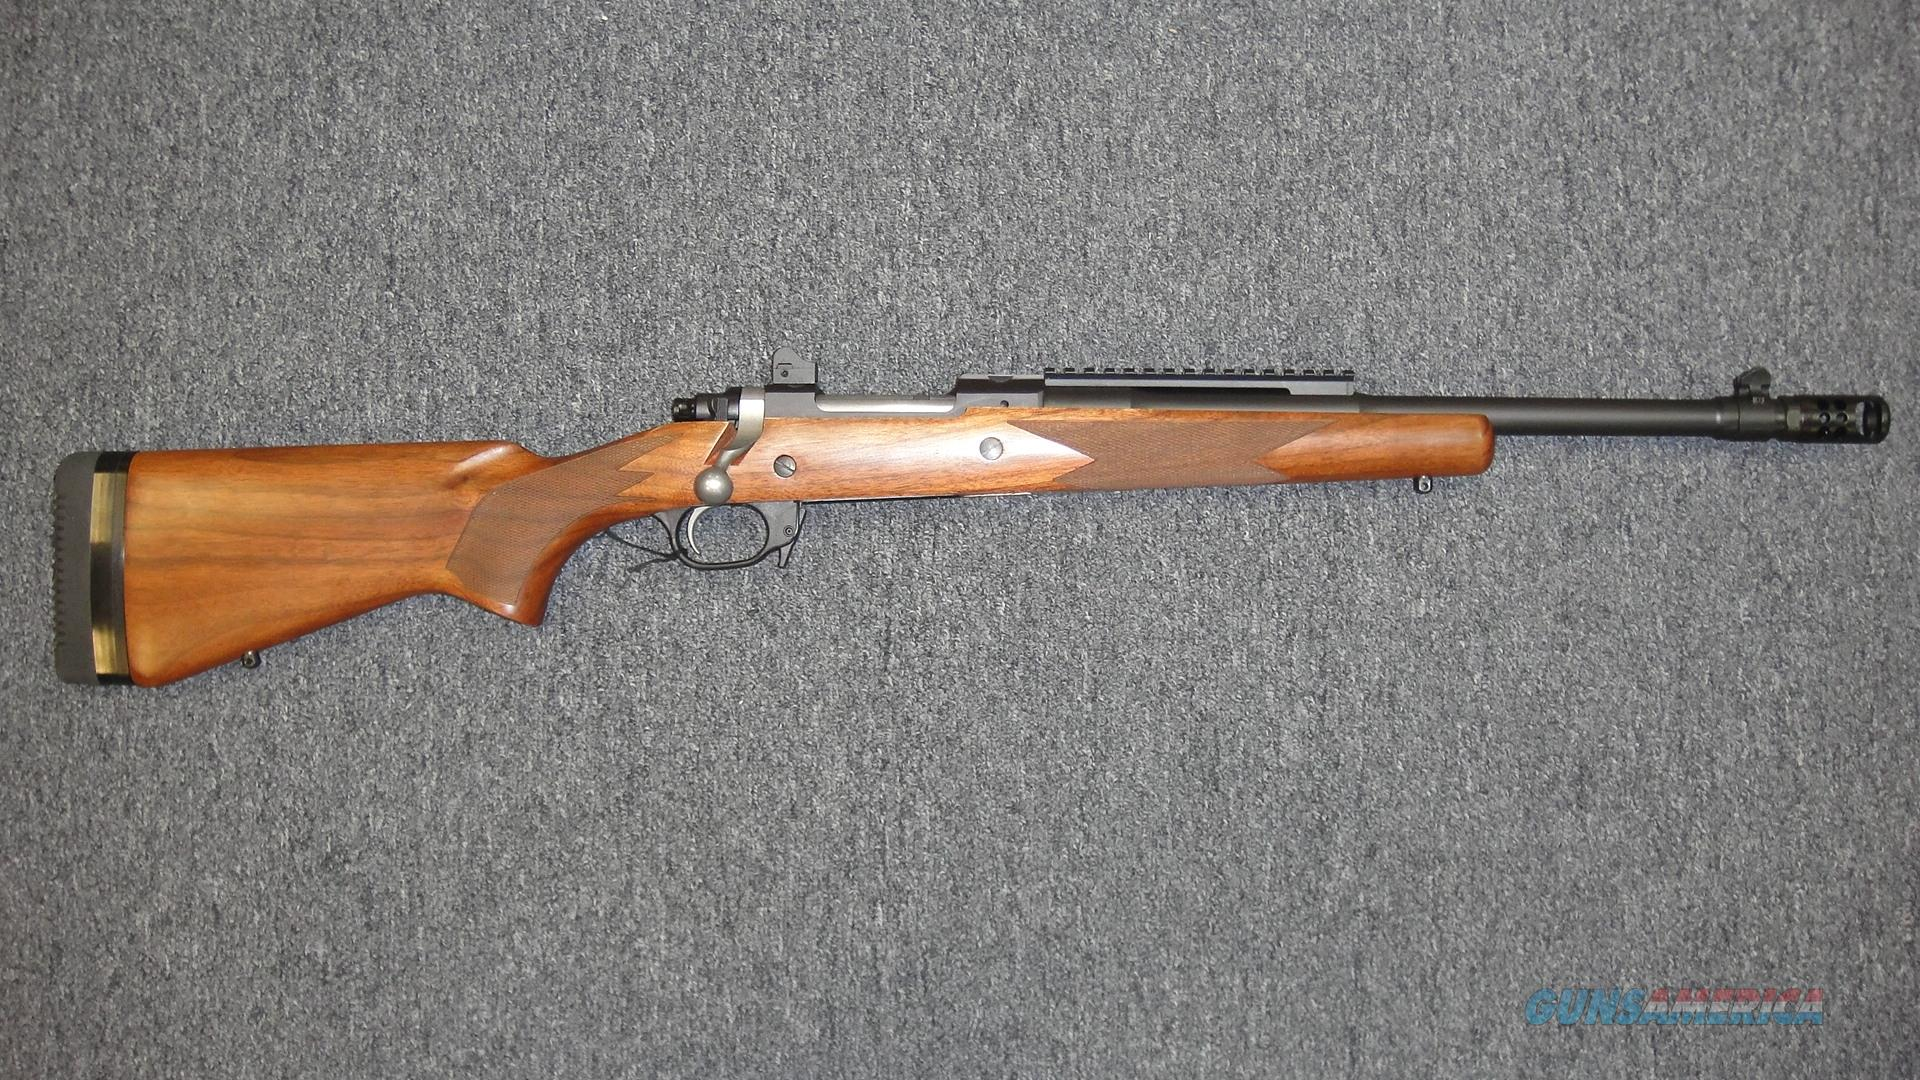 Ruger M77 Gunsite Scout .450 Bushmaster  Guns > Rifles > Ruger Rifles > Gunsite